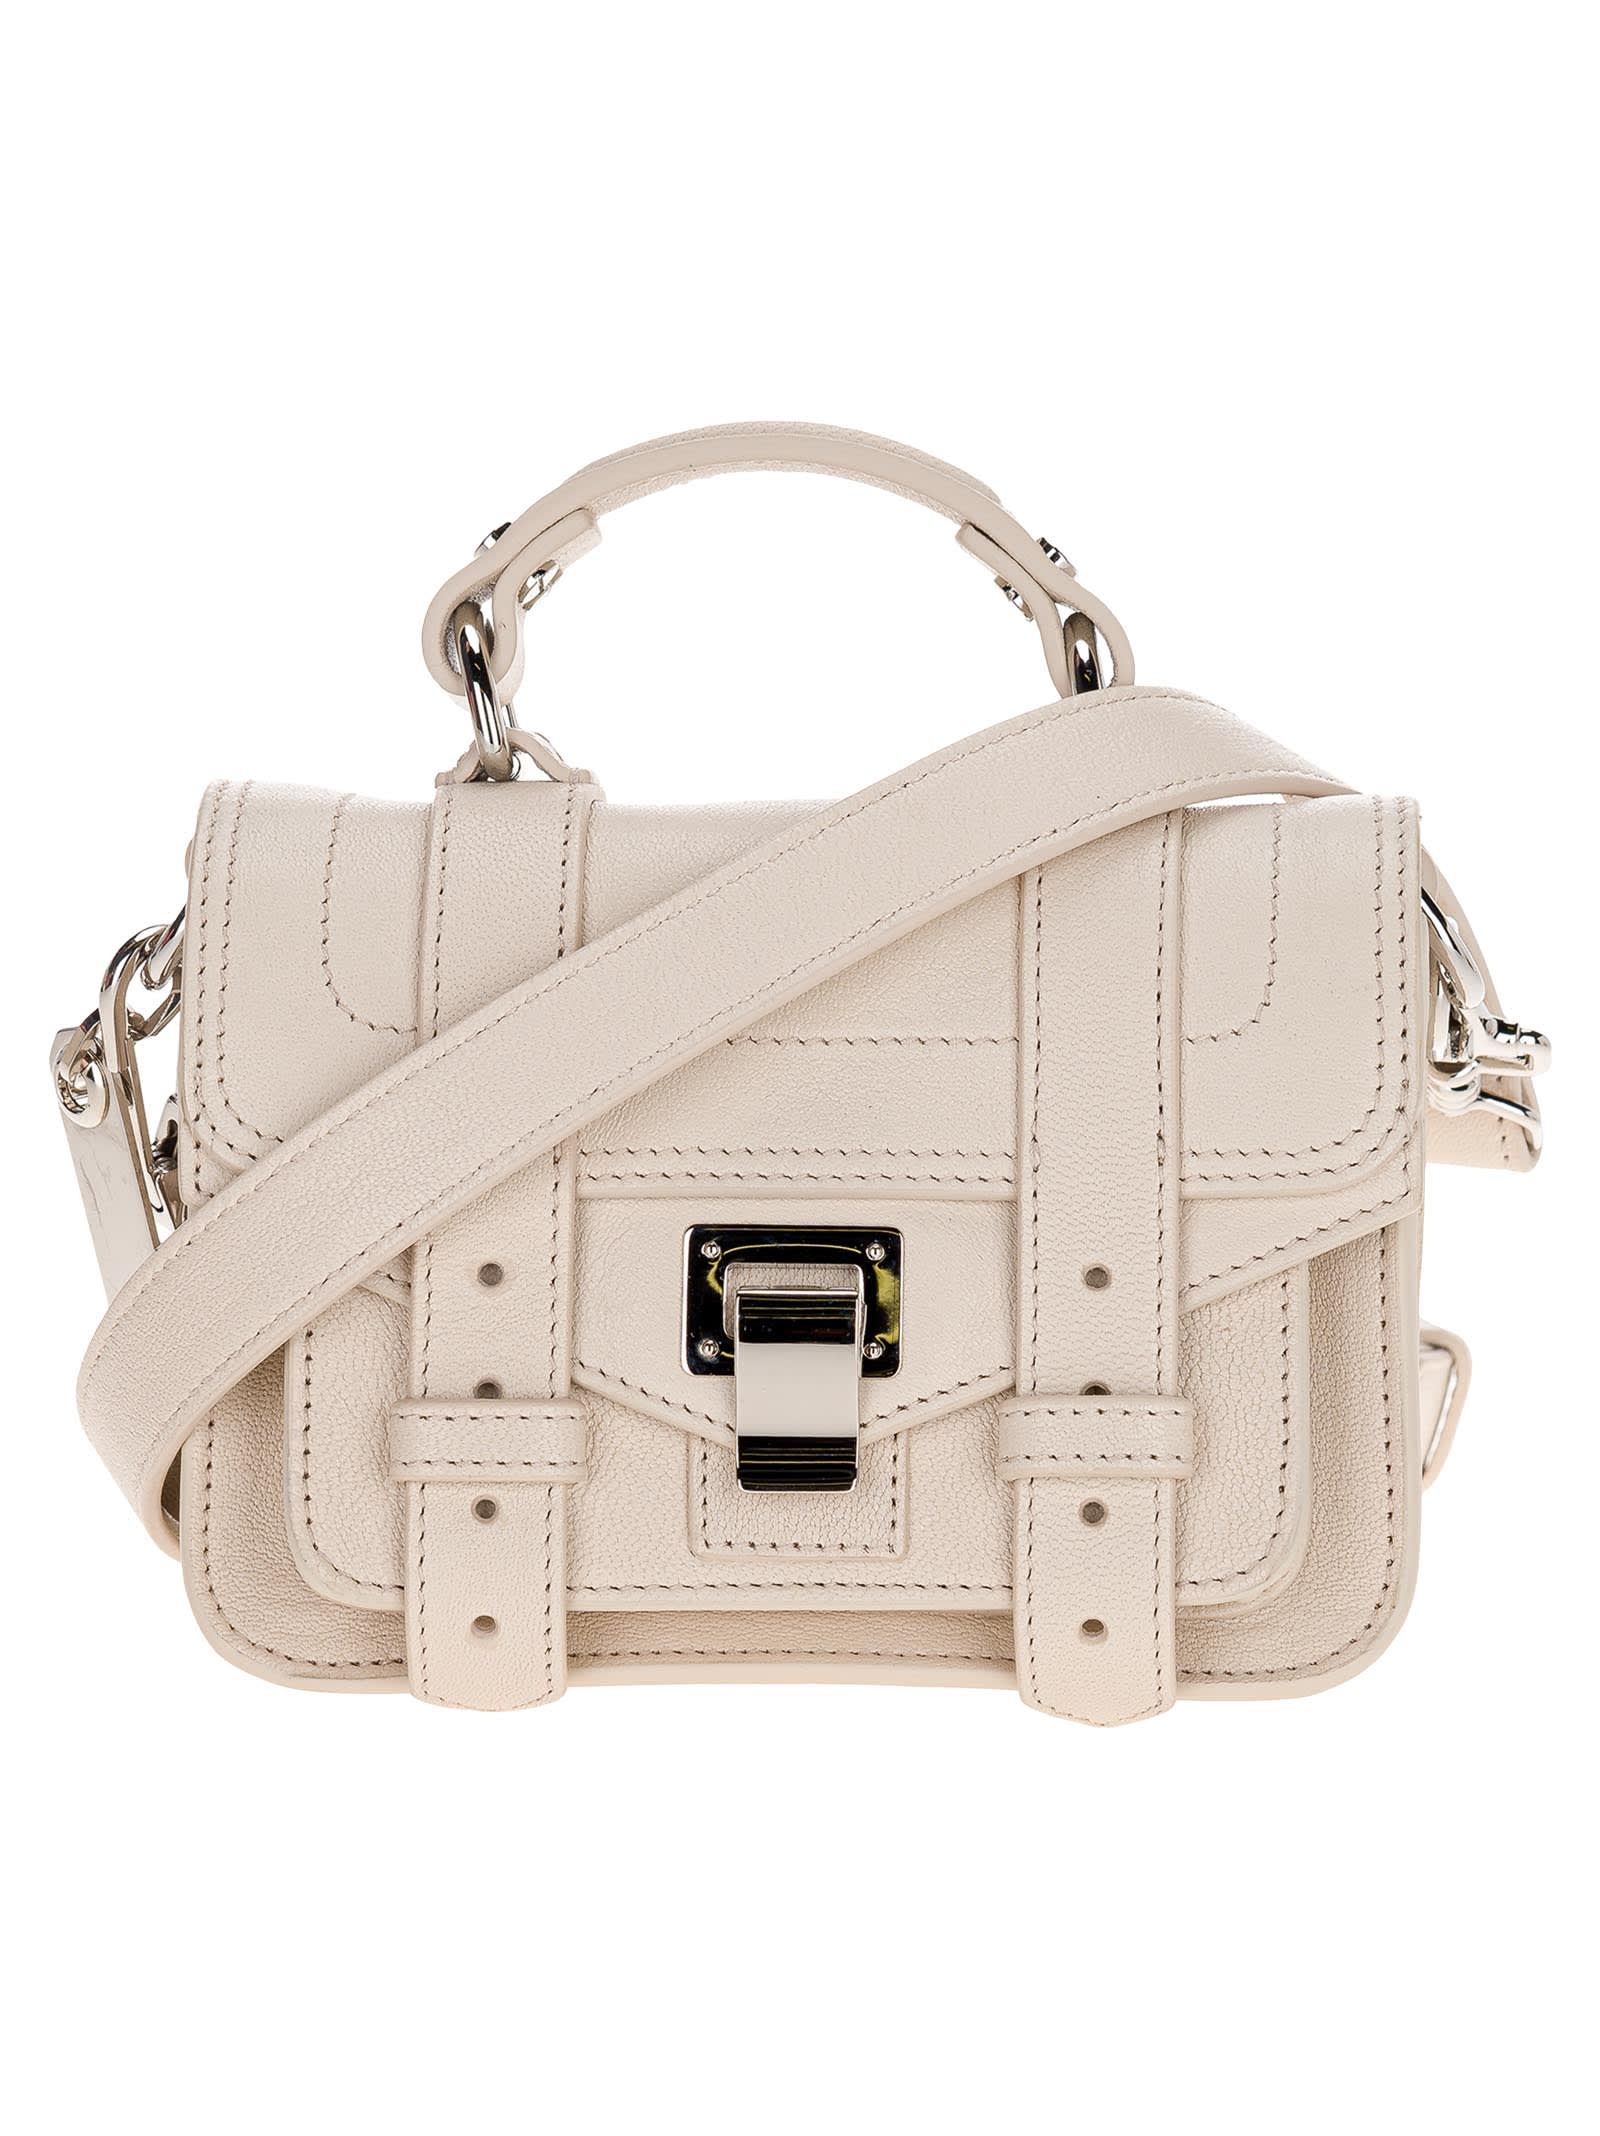 Proenza Schouler Leathers PS1 MICRO BAG